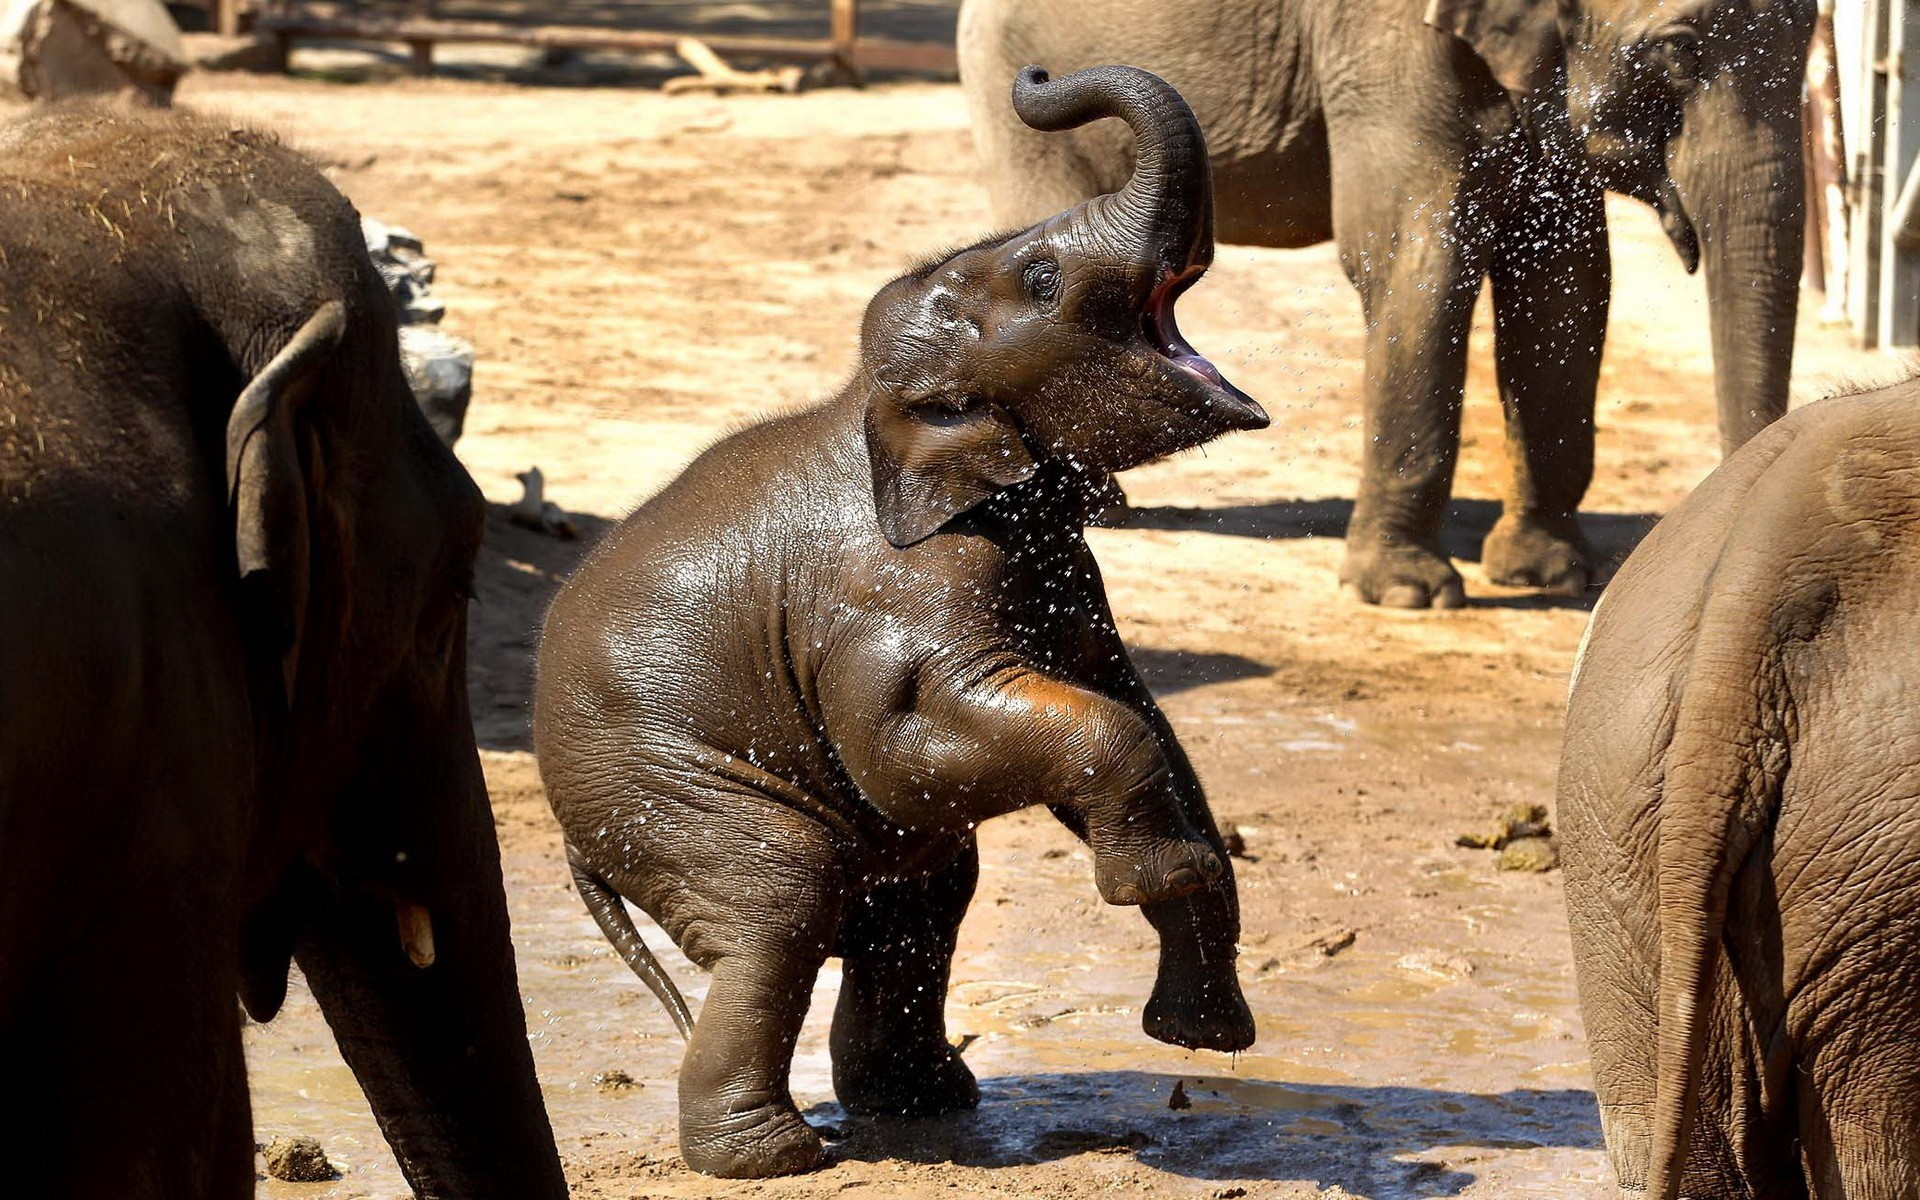 Res: 1920x1200, nature, Animals, Elephants, Baby, Elephant, Baby, Animals Wallpapers HD /  Desktop and Mobile Backgrounds